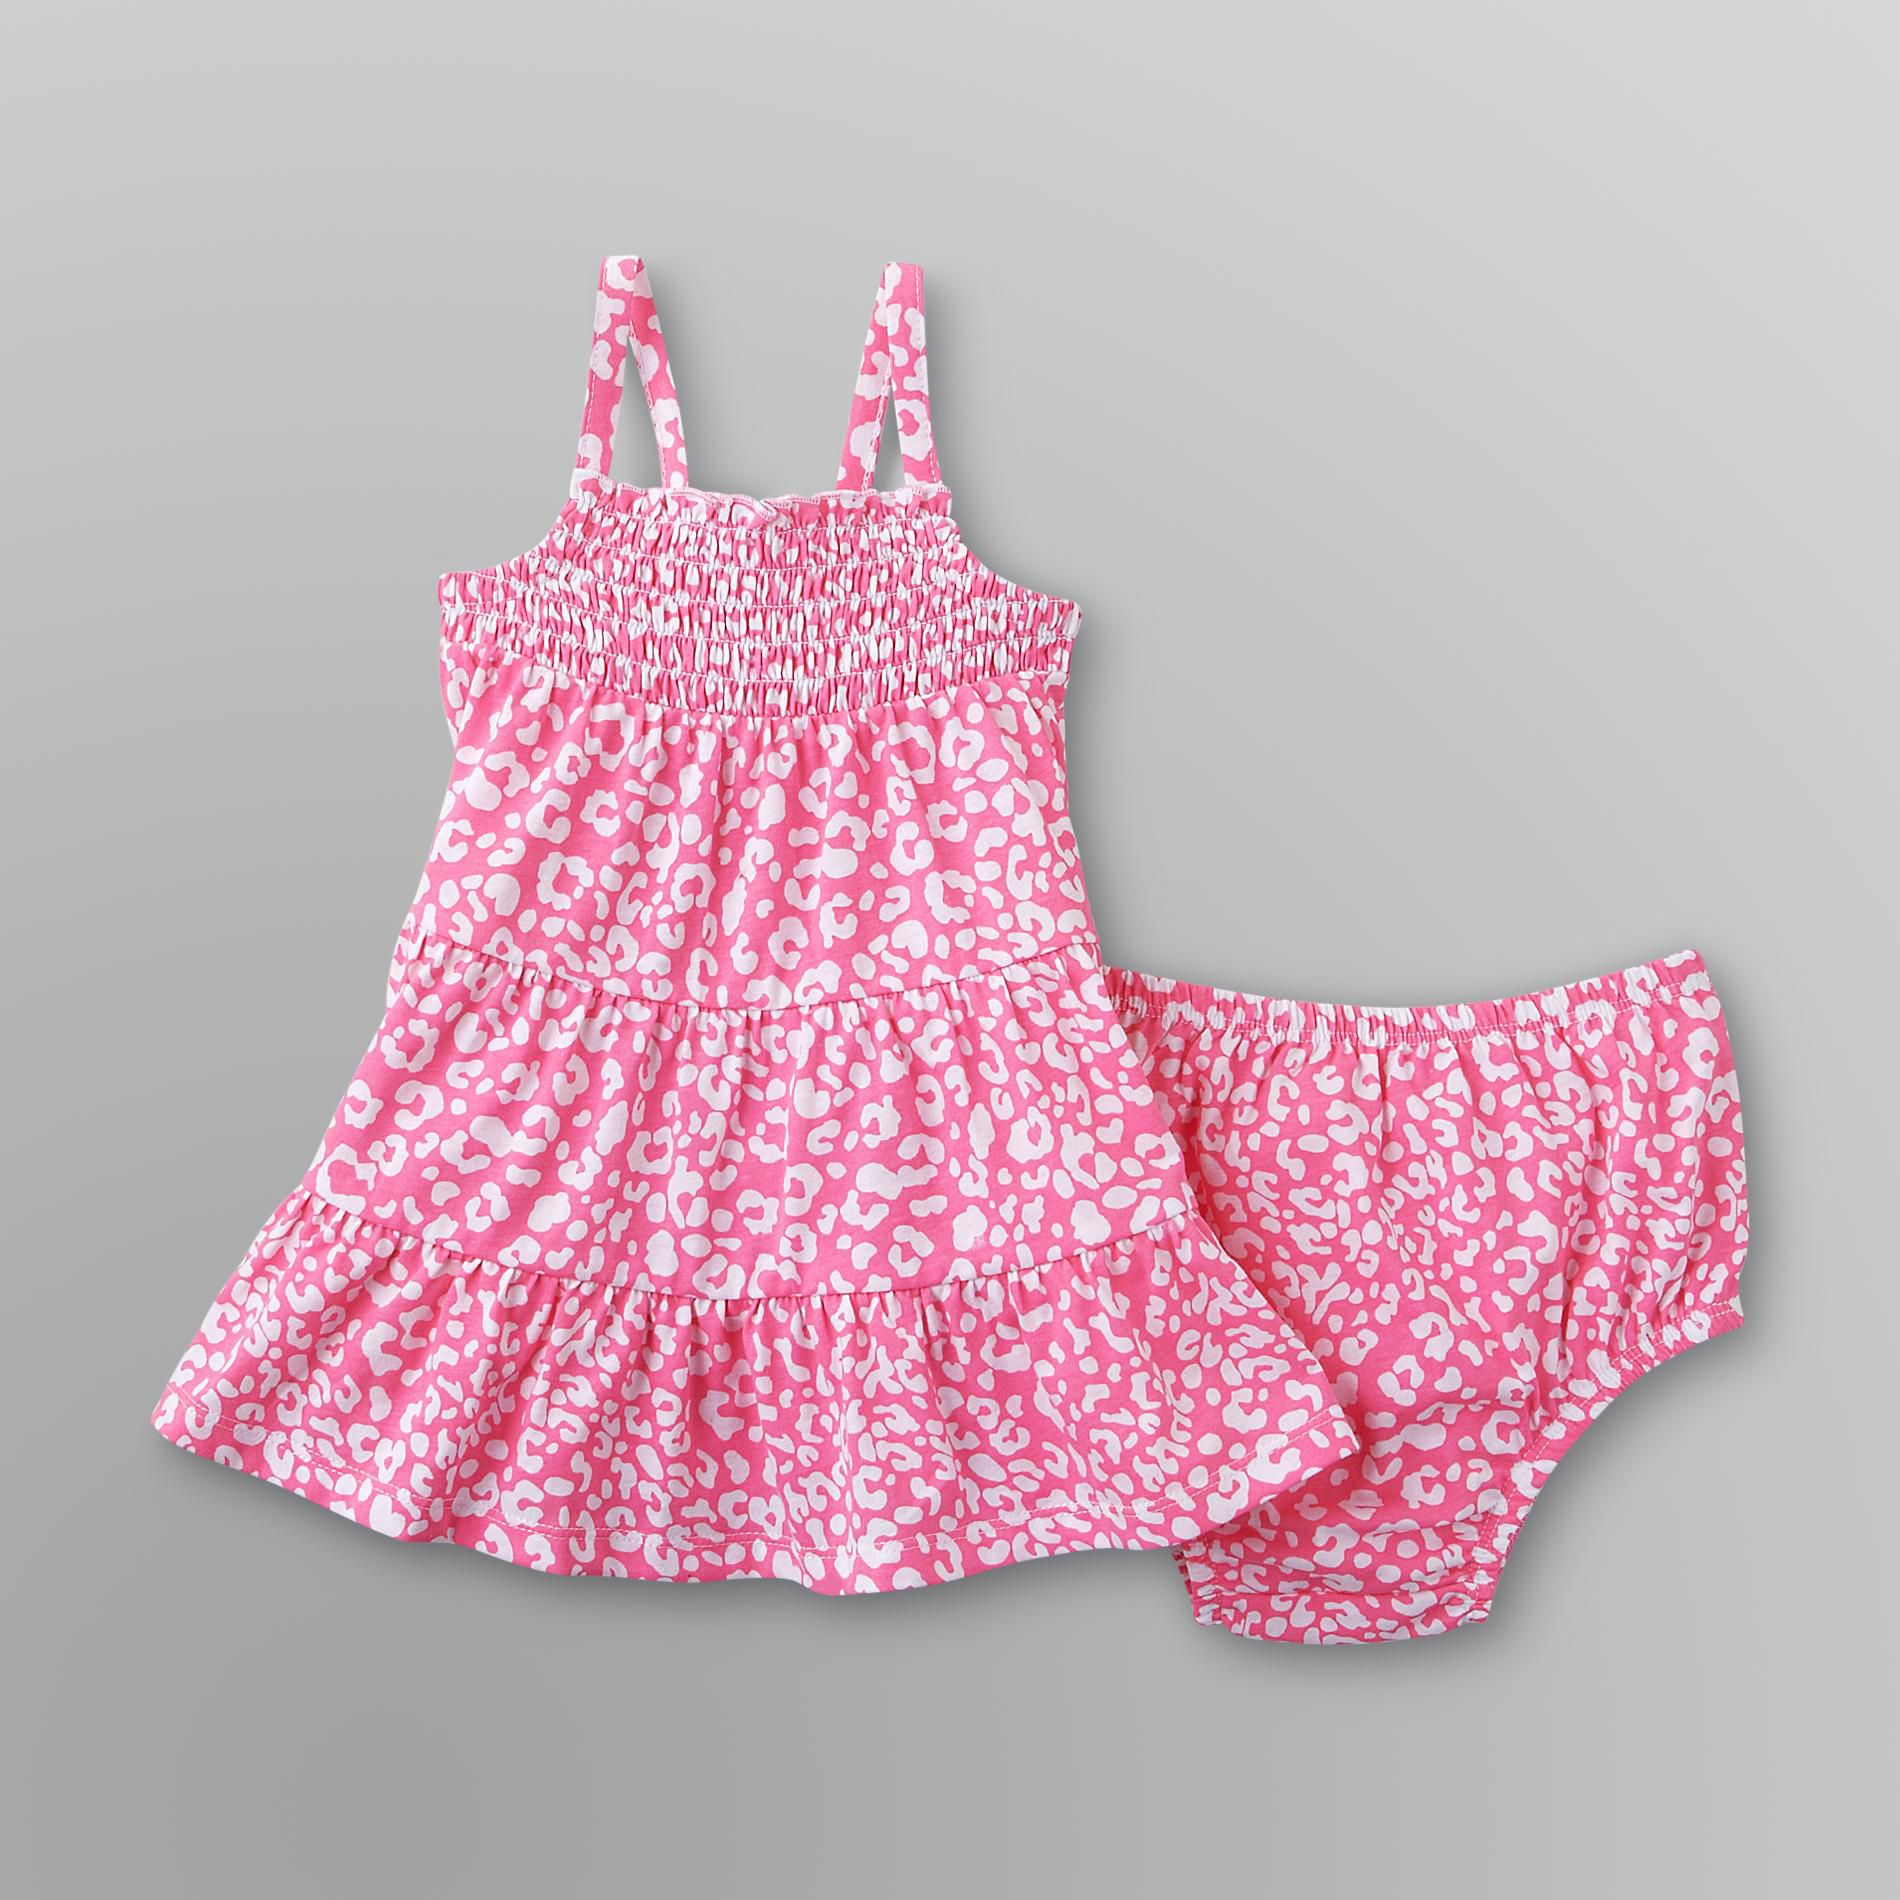 Infant Girl's Dress & Diaper Cover - Leopard Print